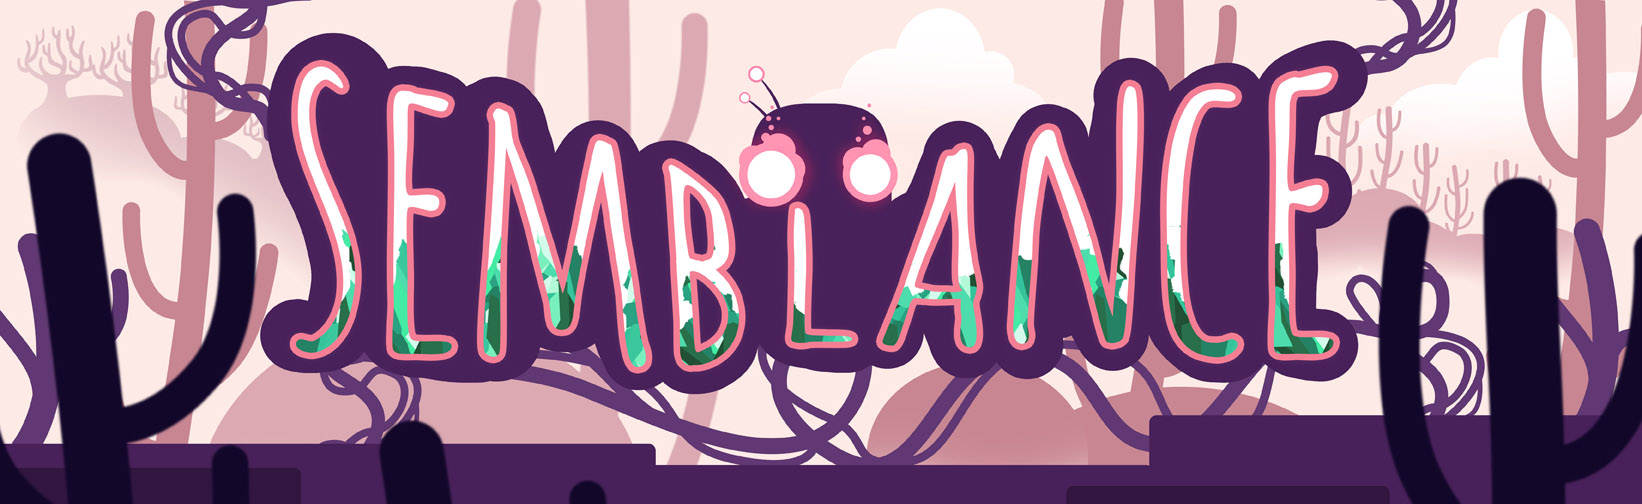 Semblance, a puzzle platformer from local devs Nyamakop